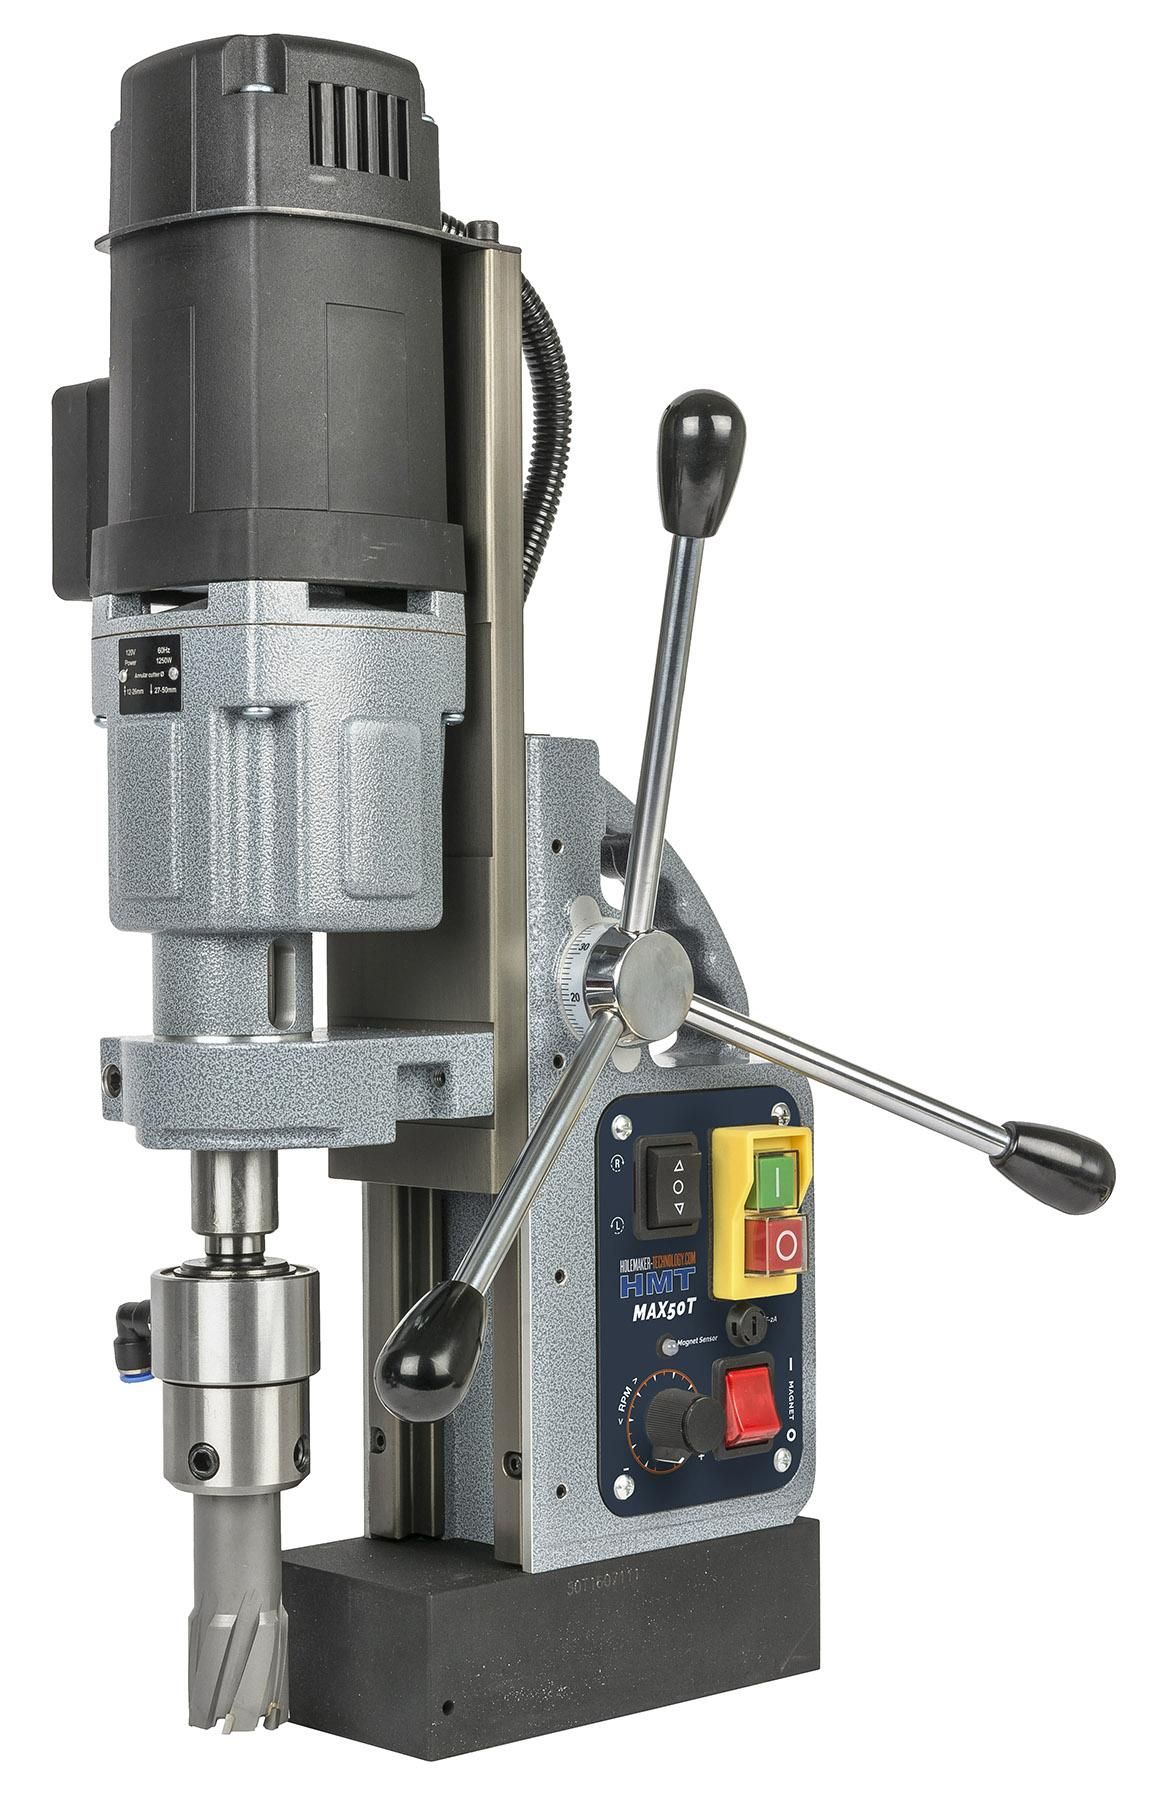 803050-0001  HMT Max-50T Tapping Magnet Drill 110 Volt with FREE TCT Cutter Set